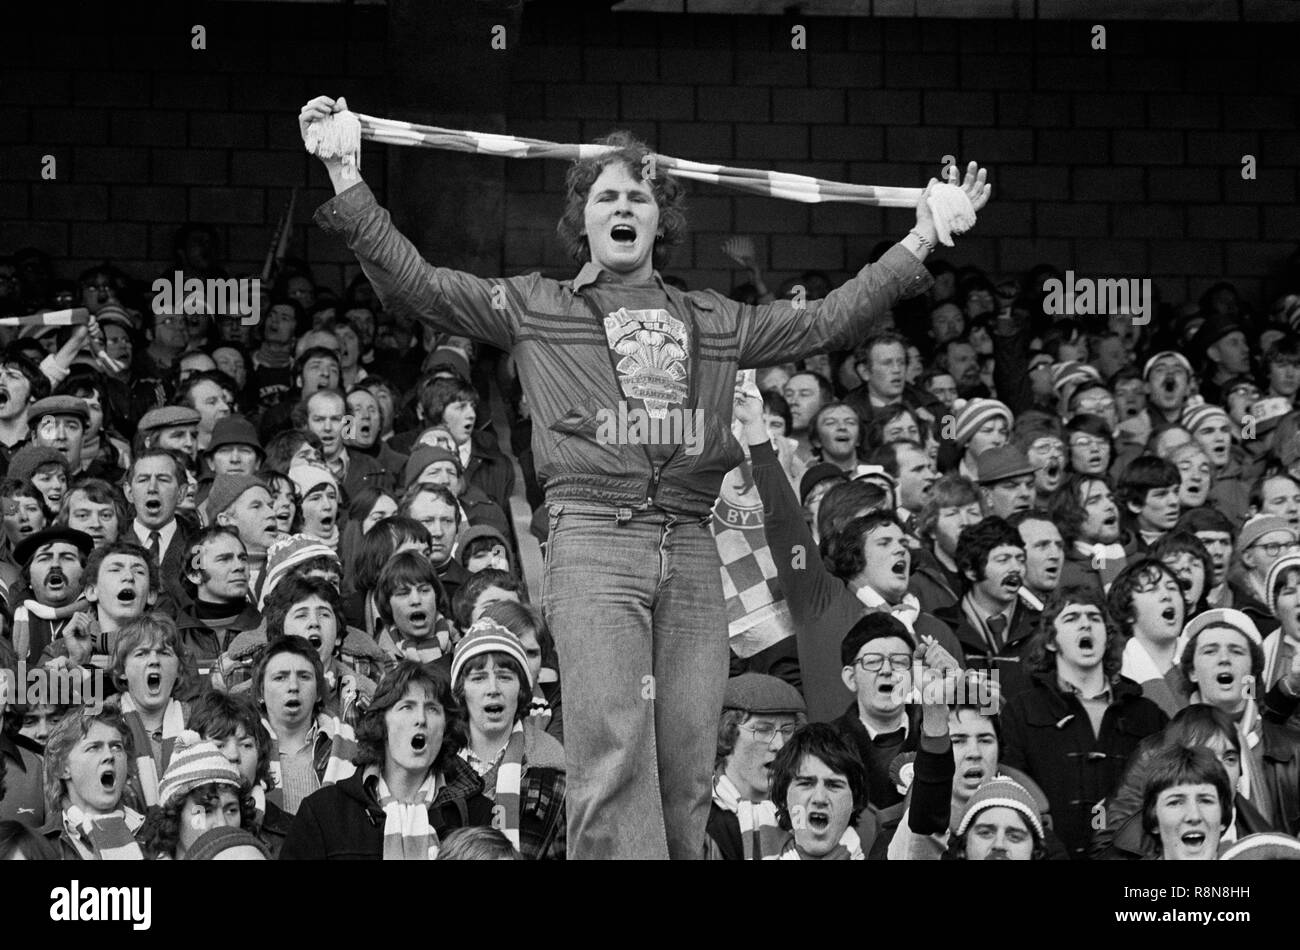 Welsh rugby supporter at Wales v England match, Cardiff Arms Park, Cardiff, Wales, March 1978. - Stock Image